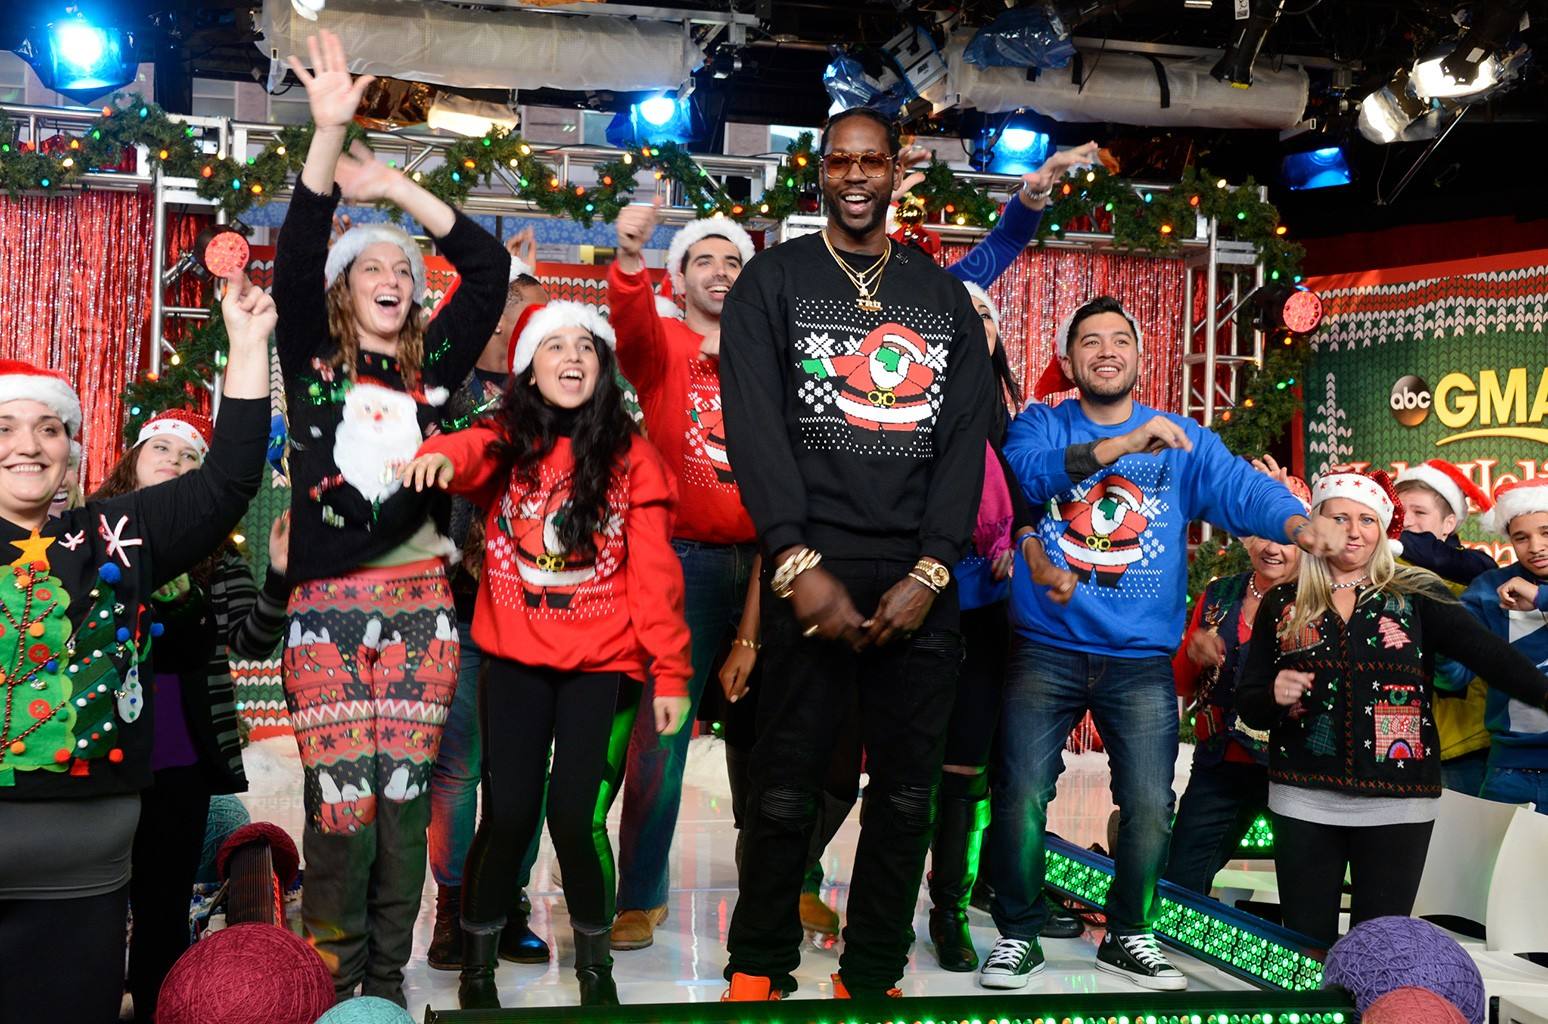 2 Chainz on Good Morning American on Dec. 17, 2015.